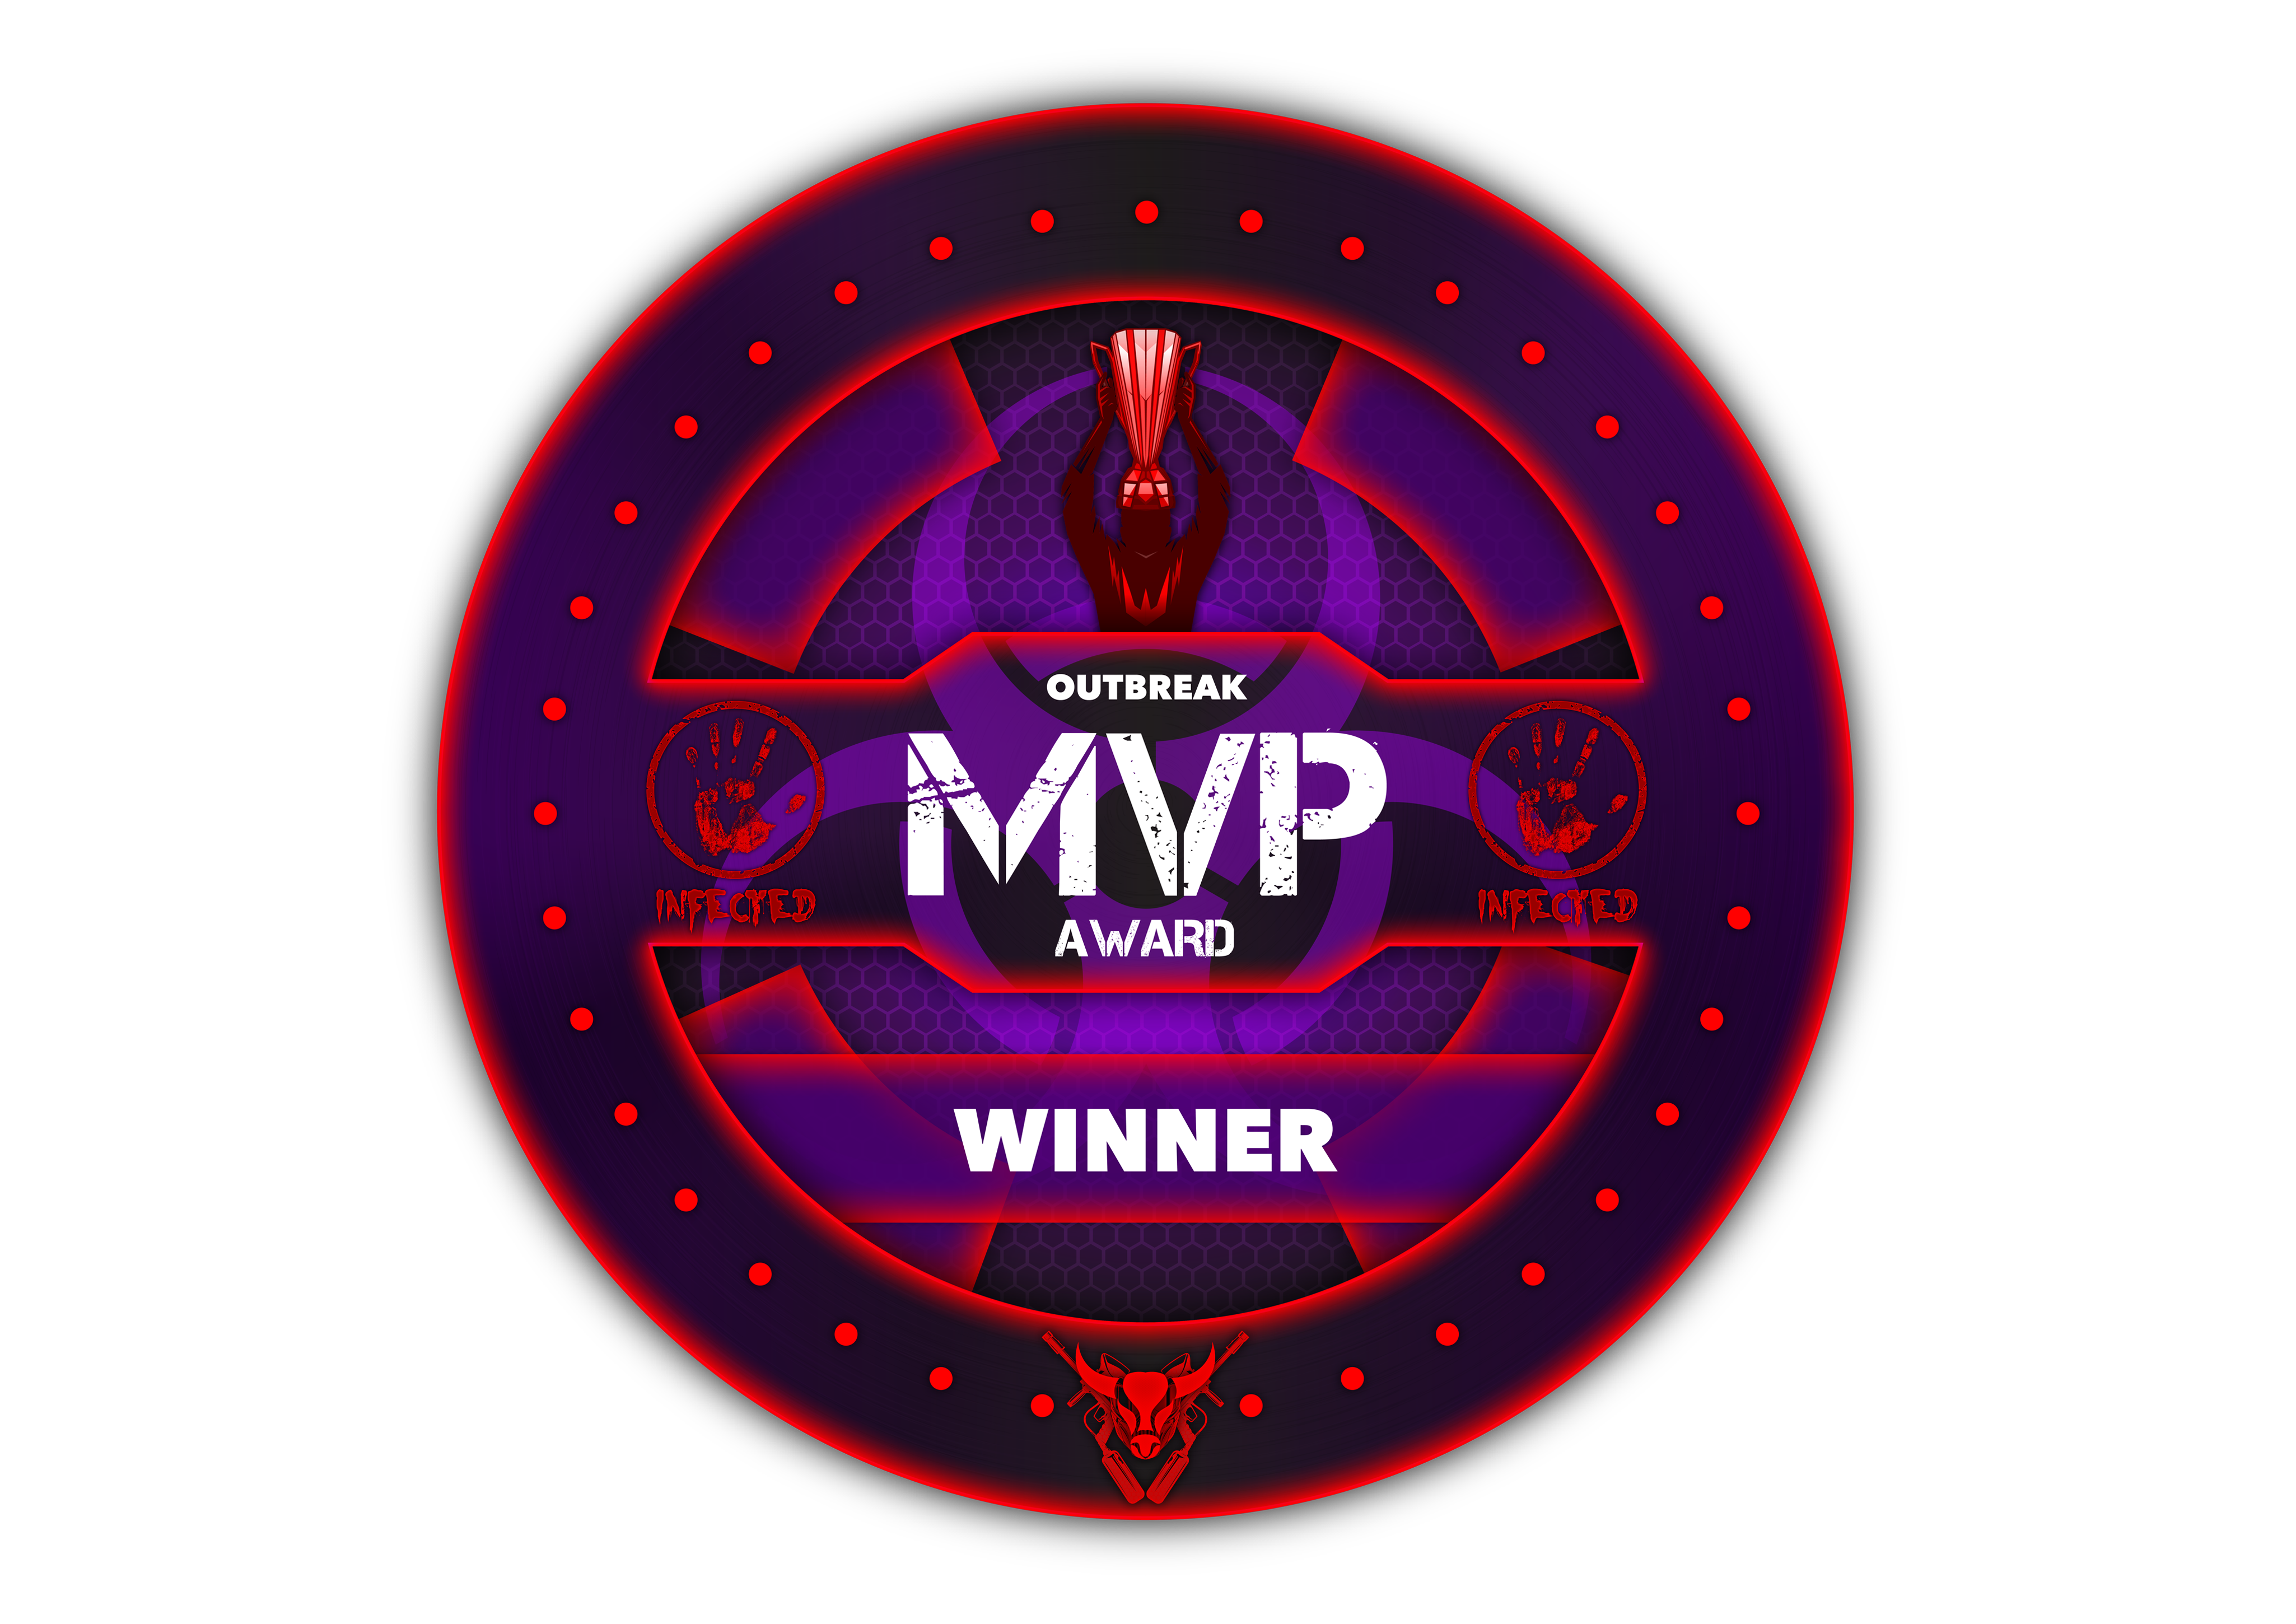 INFECTED MVP